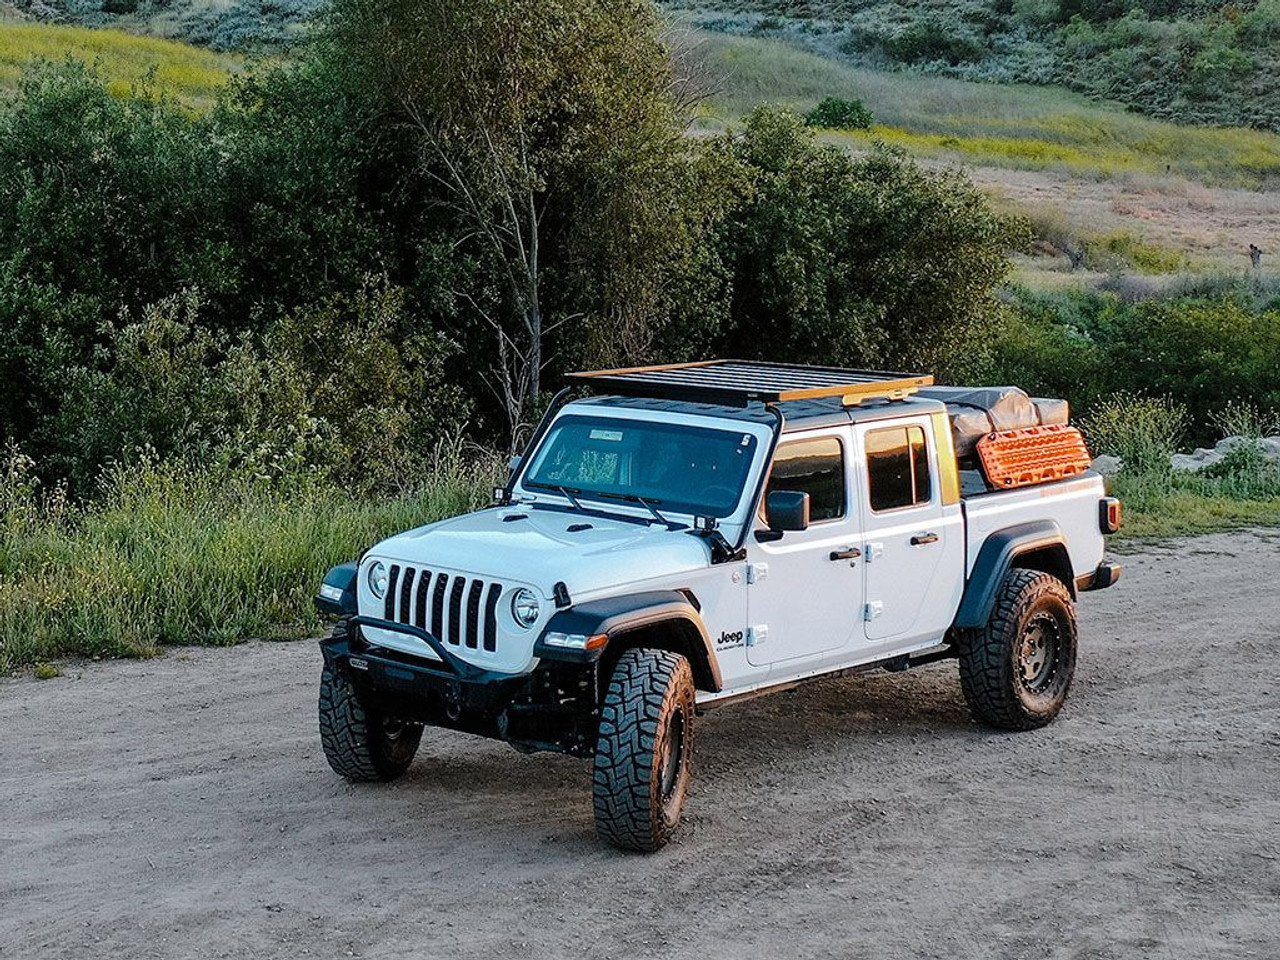 Jeep Gladiator Jt 2019 Current Extreme Roof Rack Kit Krjg005t By Front Runner